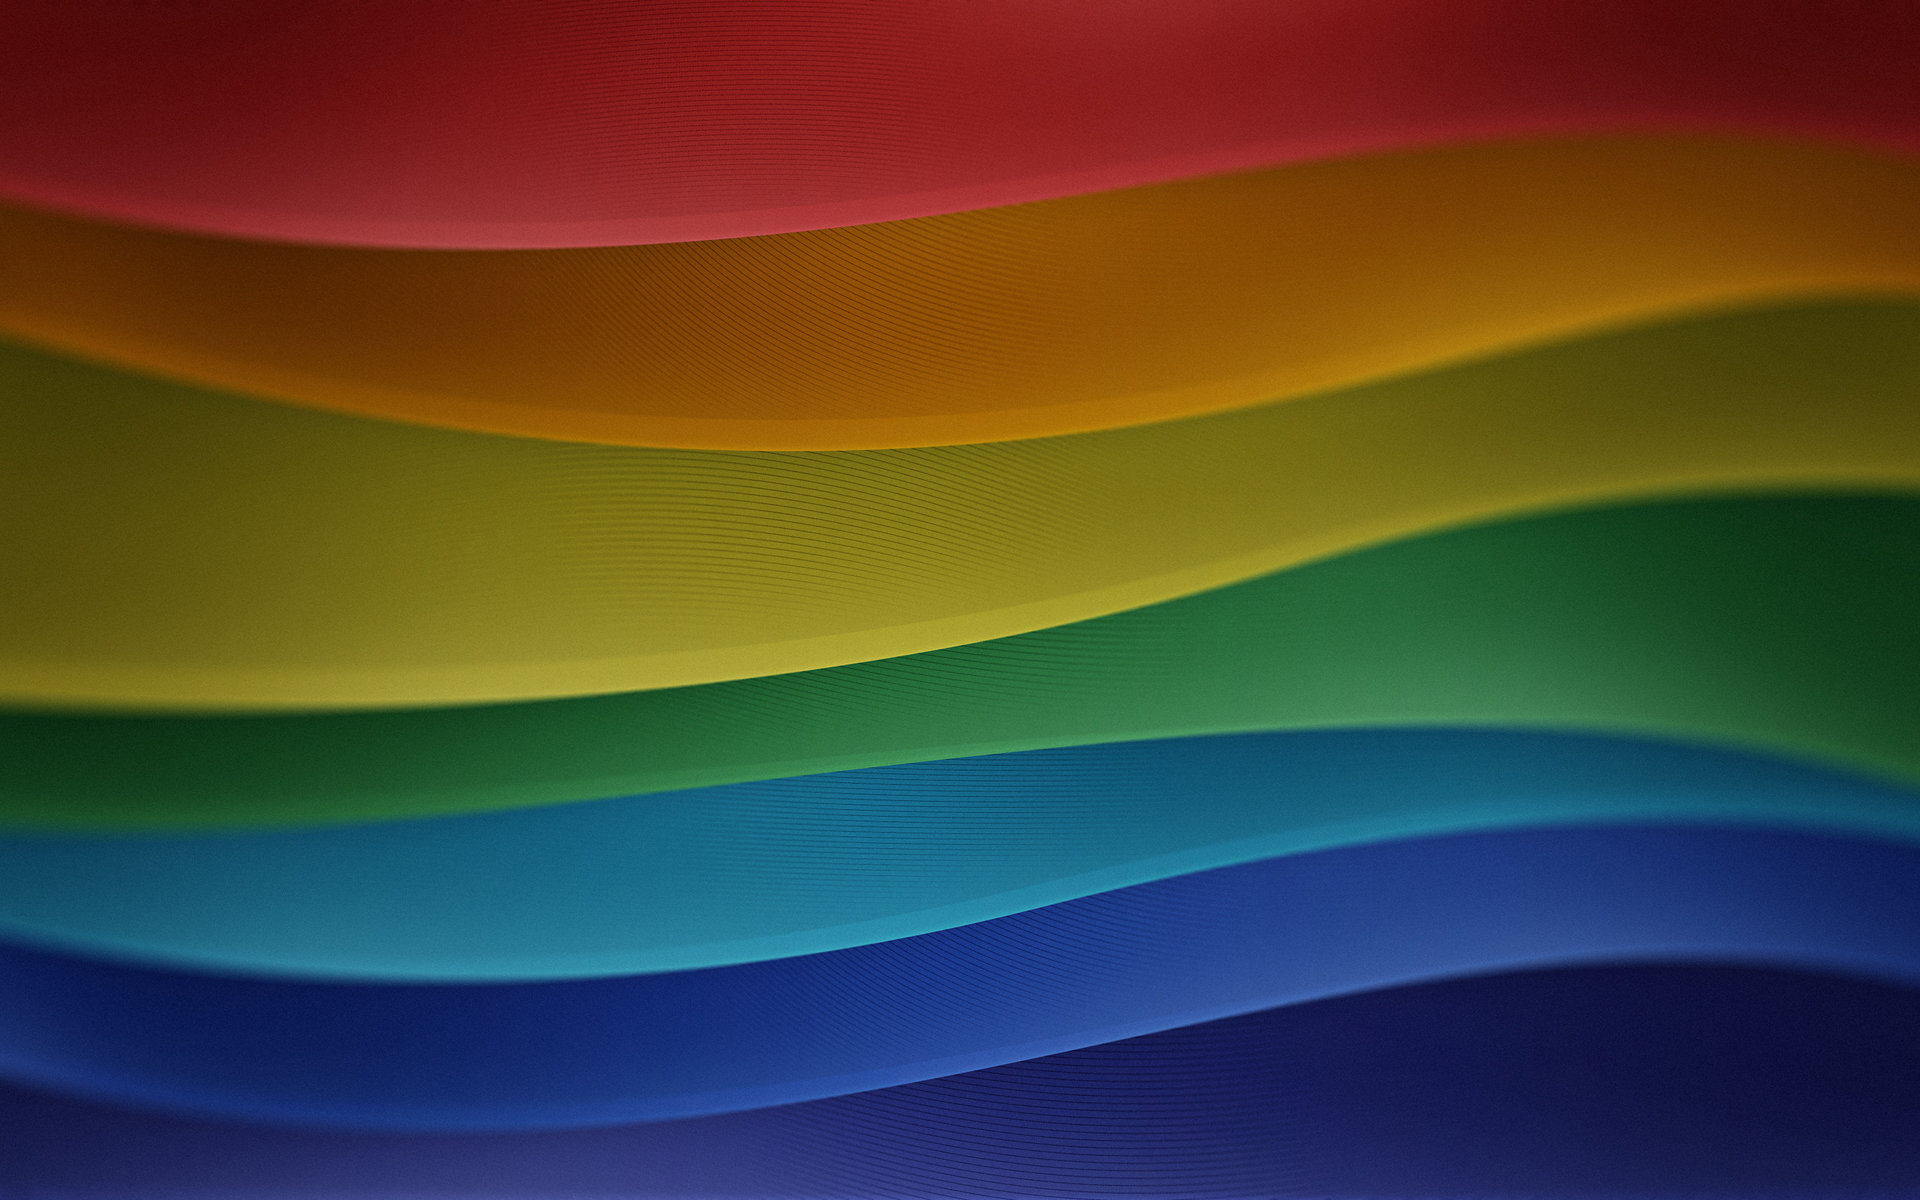 Free Colors high quality wallpaper ID:389672 for hd 1920x1200 PC